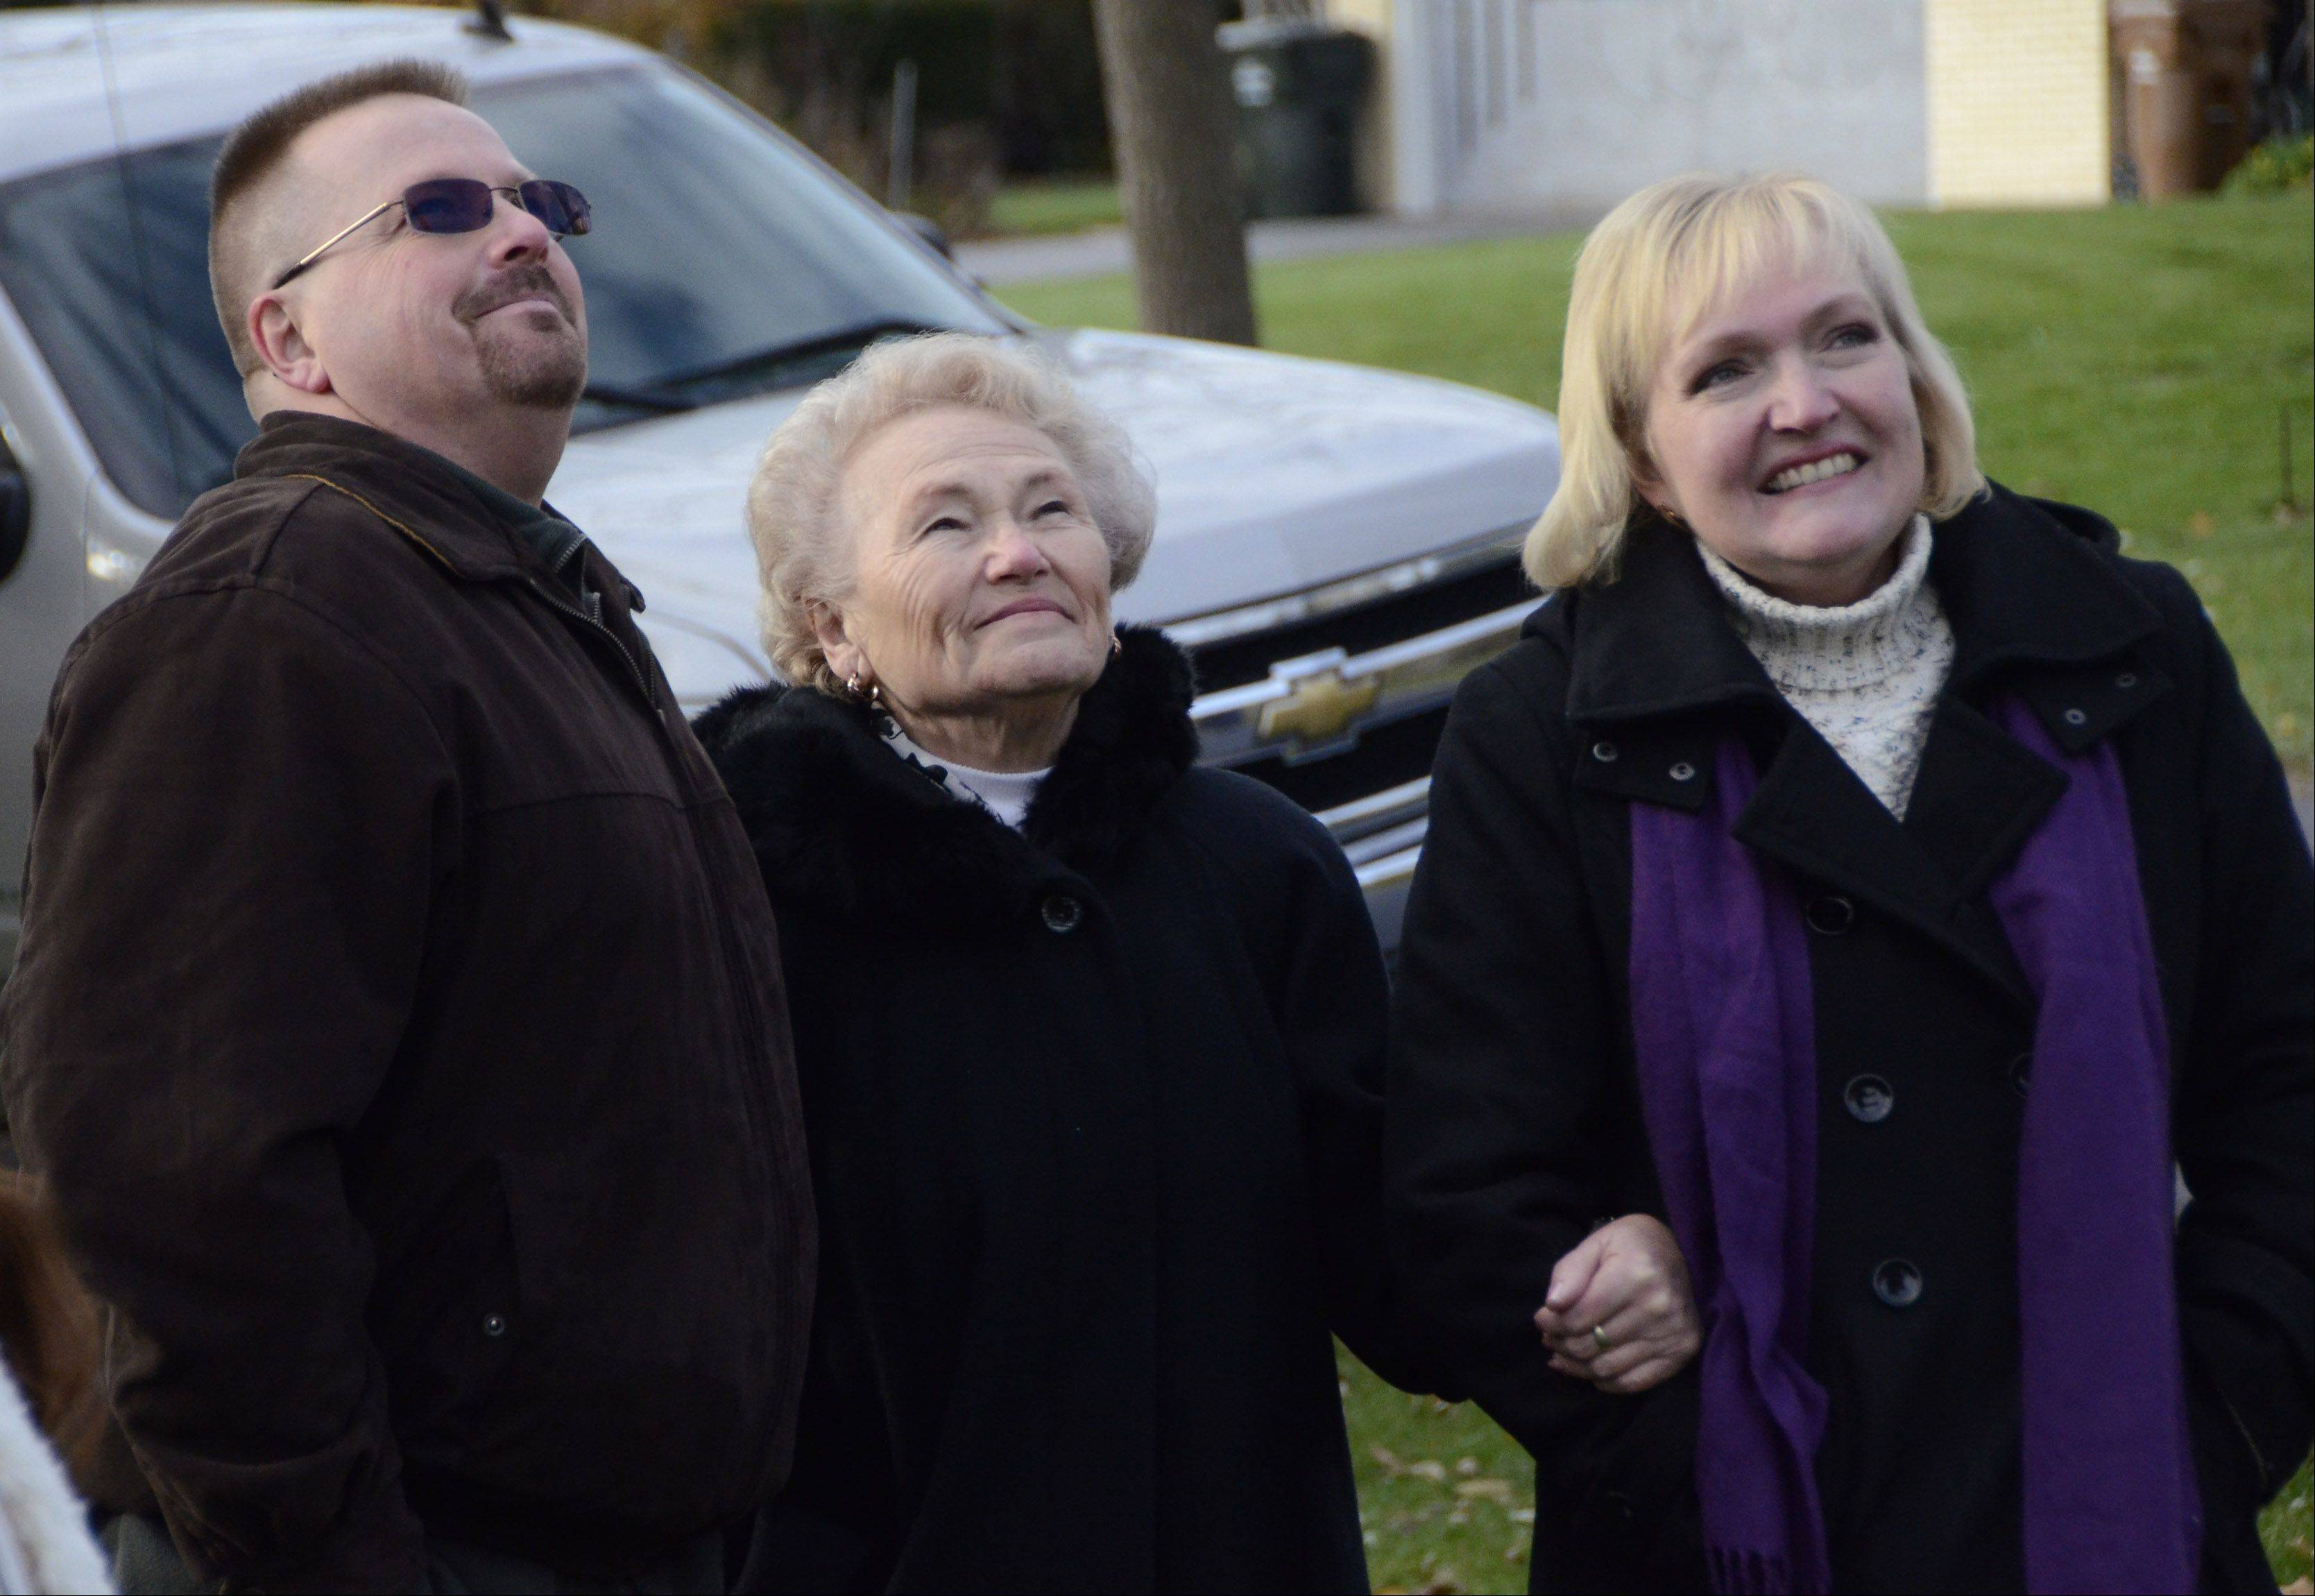 Barbara Theiszmann, center, of Prospect Heights watches with son, Tony Theiszmann of McHenry, and daughter, Kathy Patton of Wheaton, as their tree is lowered onto a truck headed to Chicago, where it will serve as the city's official Christmas tree.